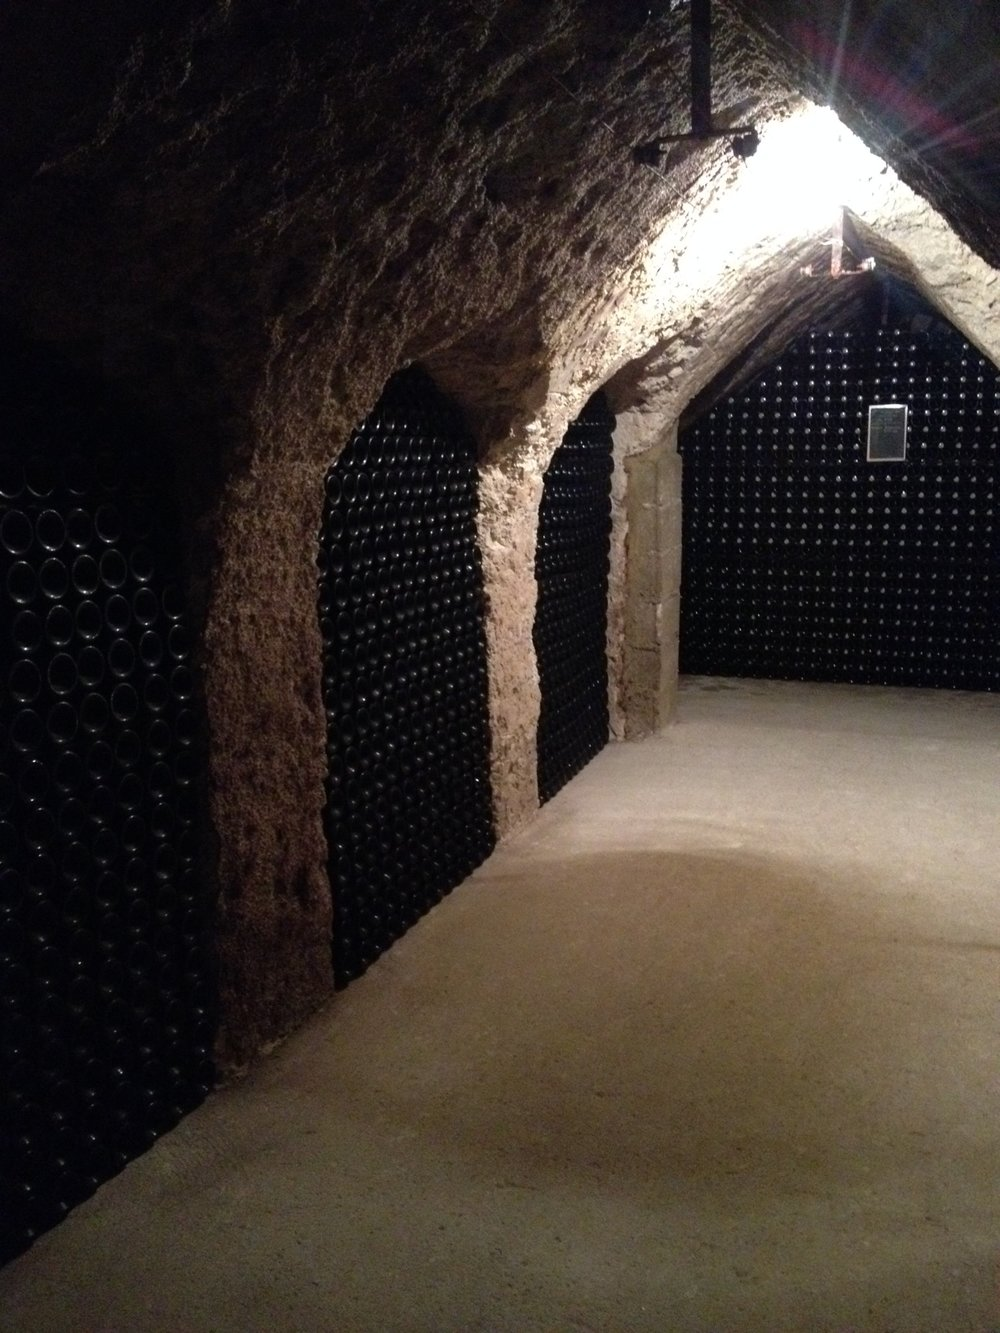 Cellars cut into the living rock